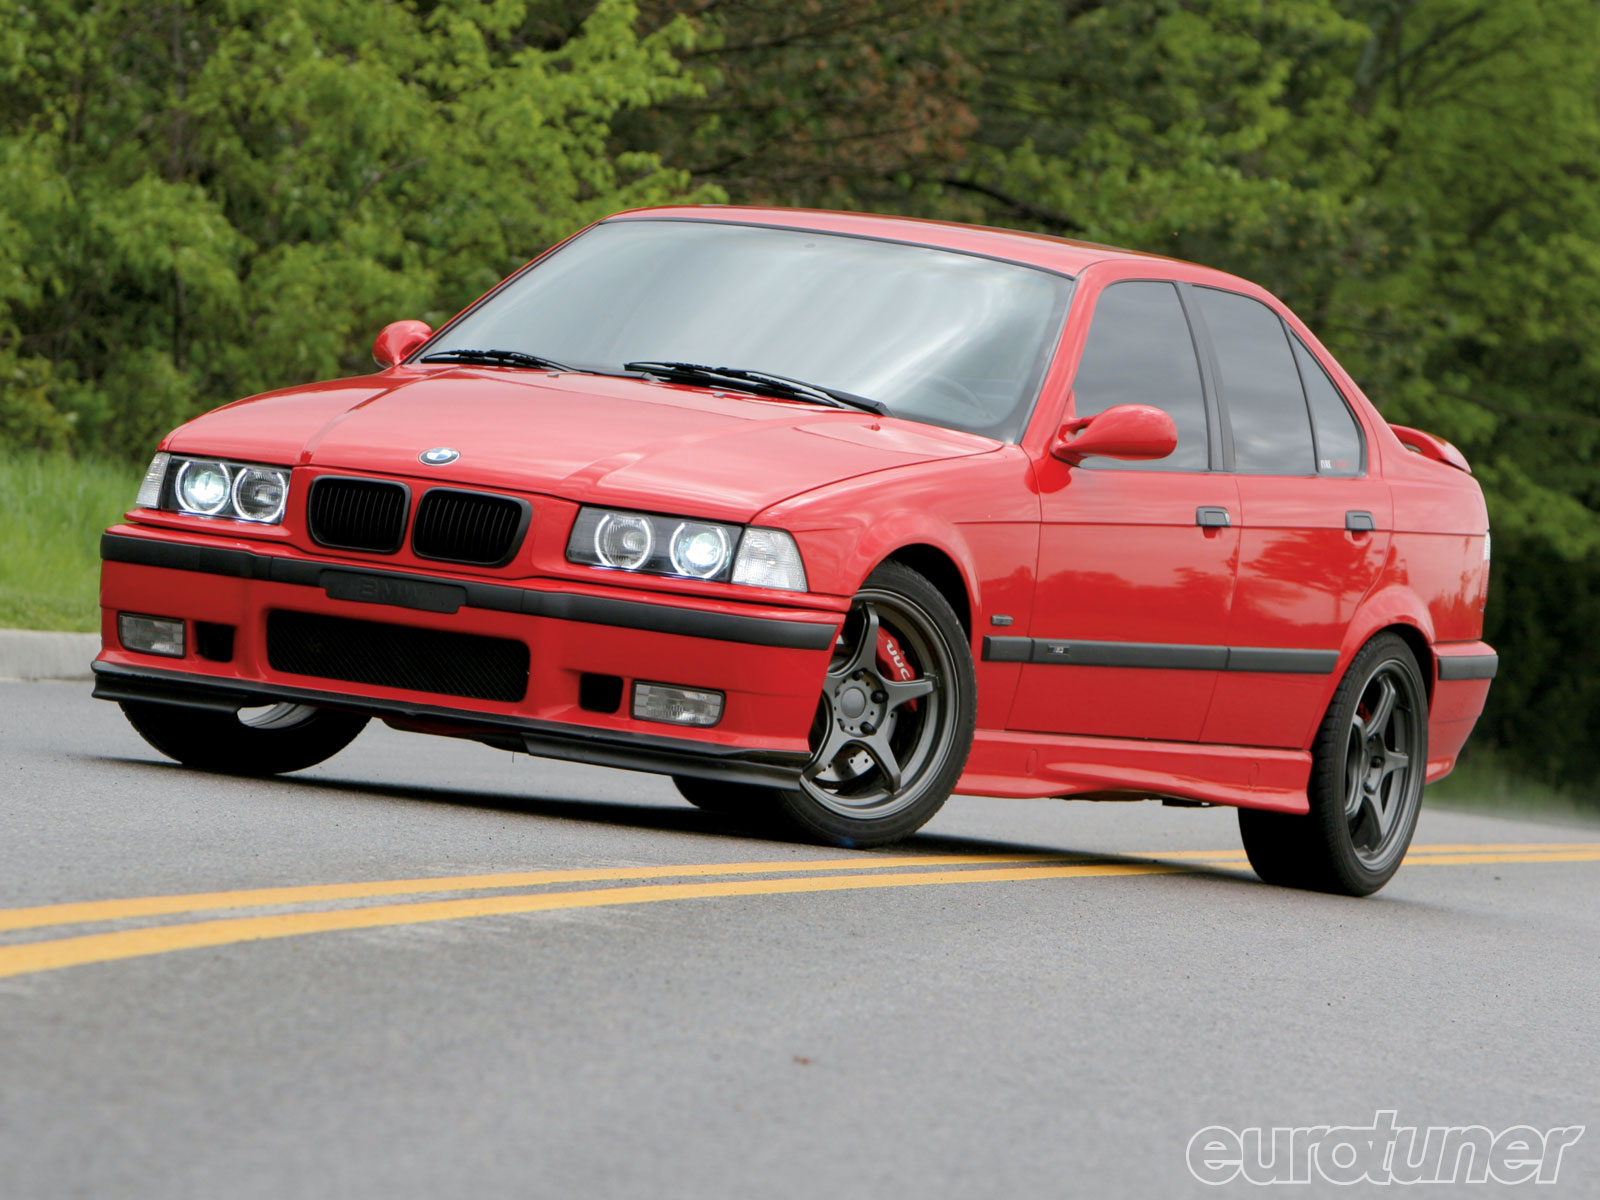 Bmw E36 M3 Project Project Car Eurotuner Magazine